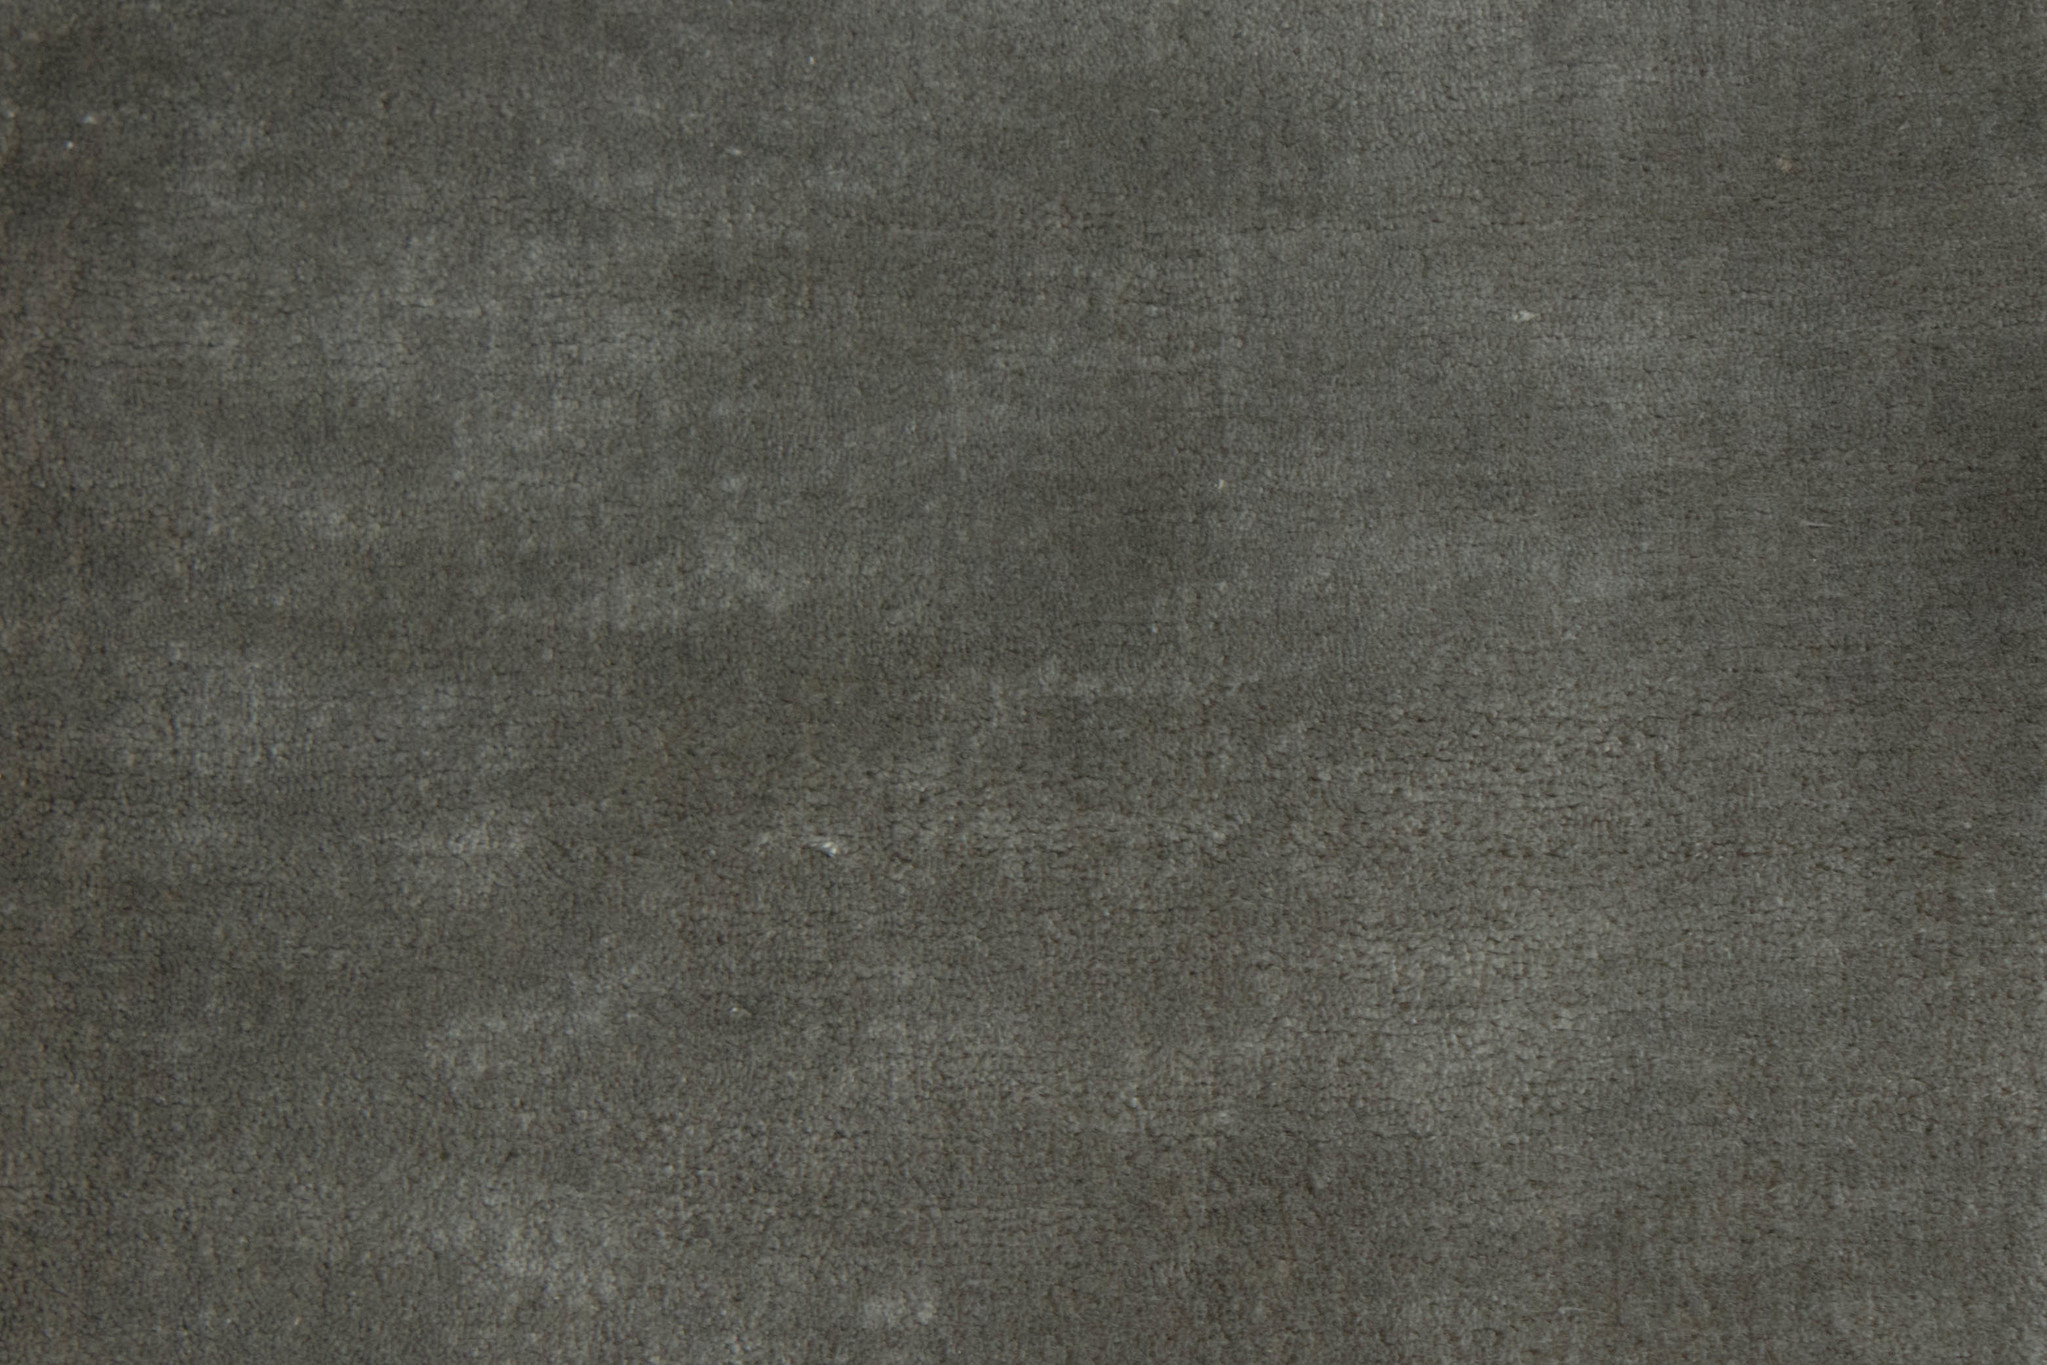 PARMA Carpet Deep Taupe 300x400-1